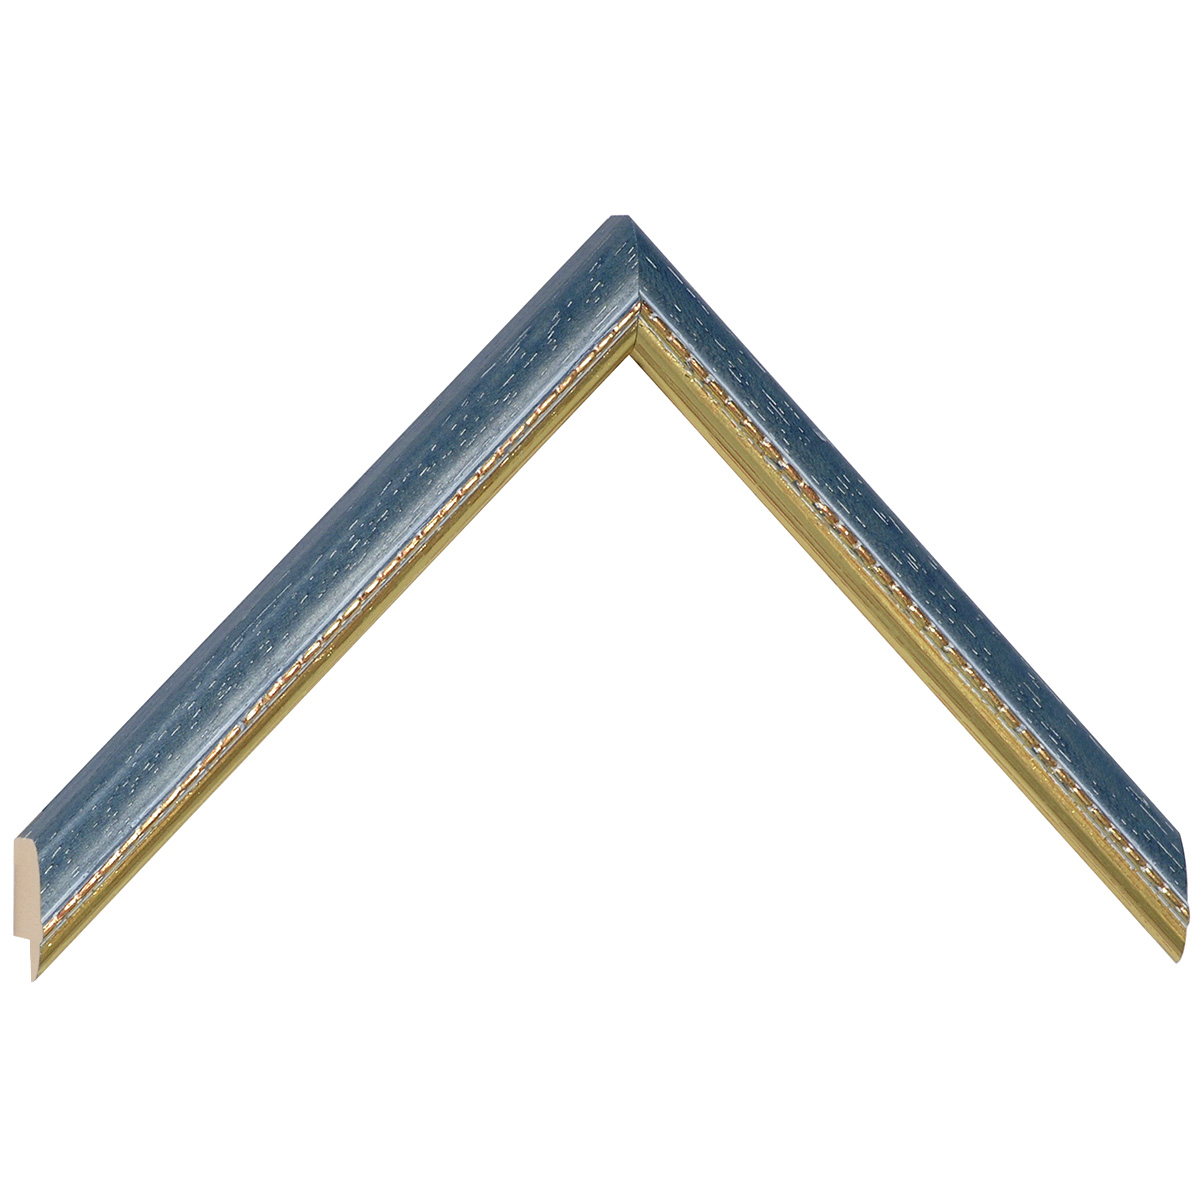 Moulding ayous 17mm - blue, gold decorative relief